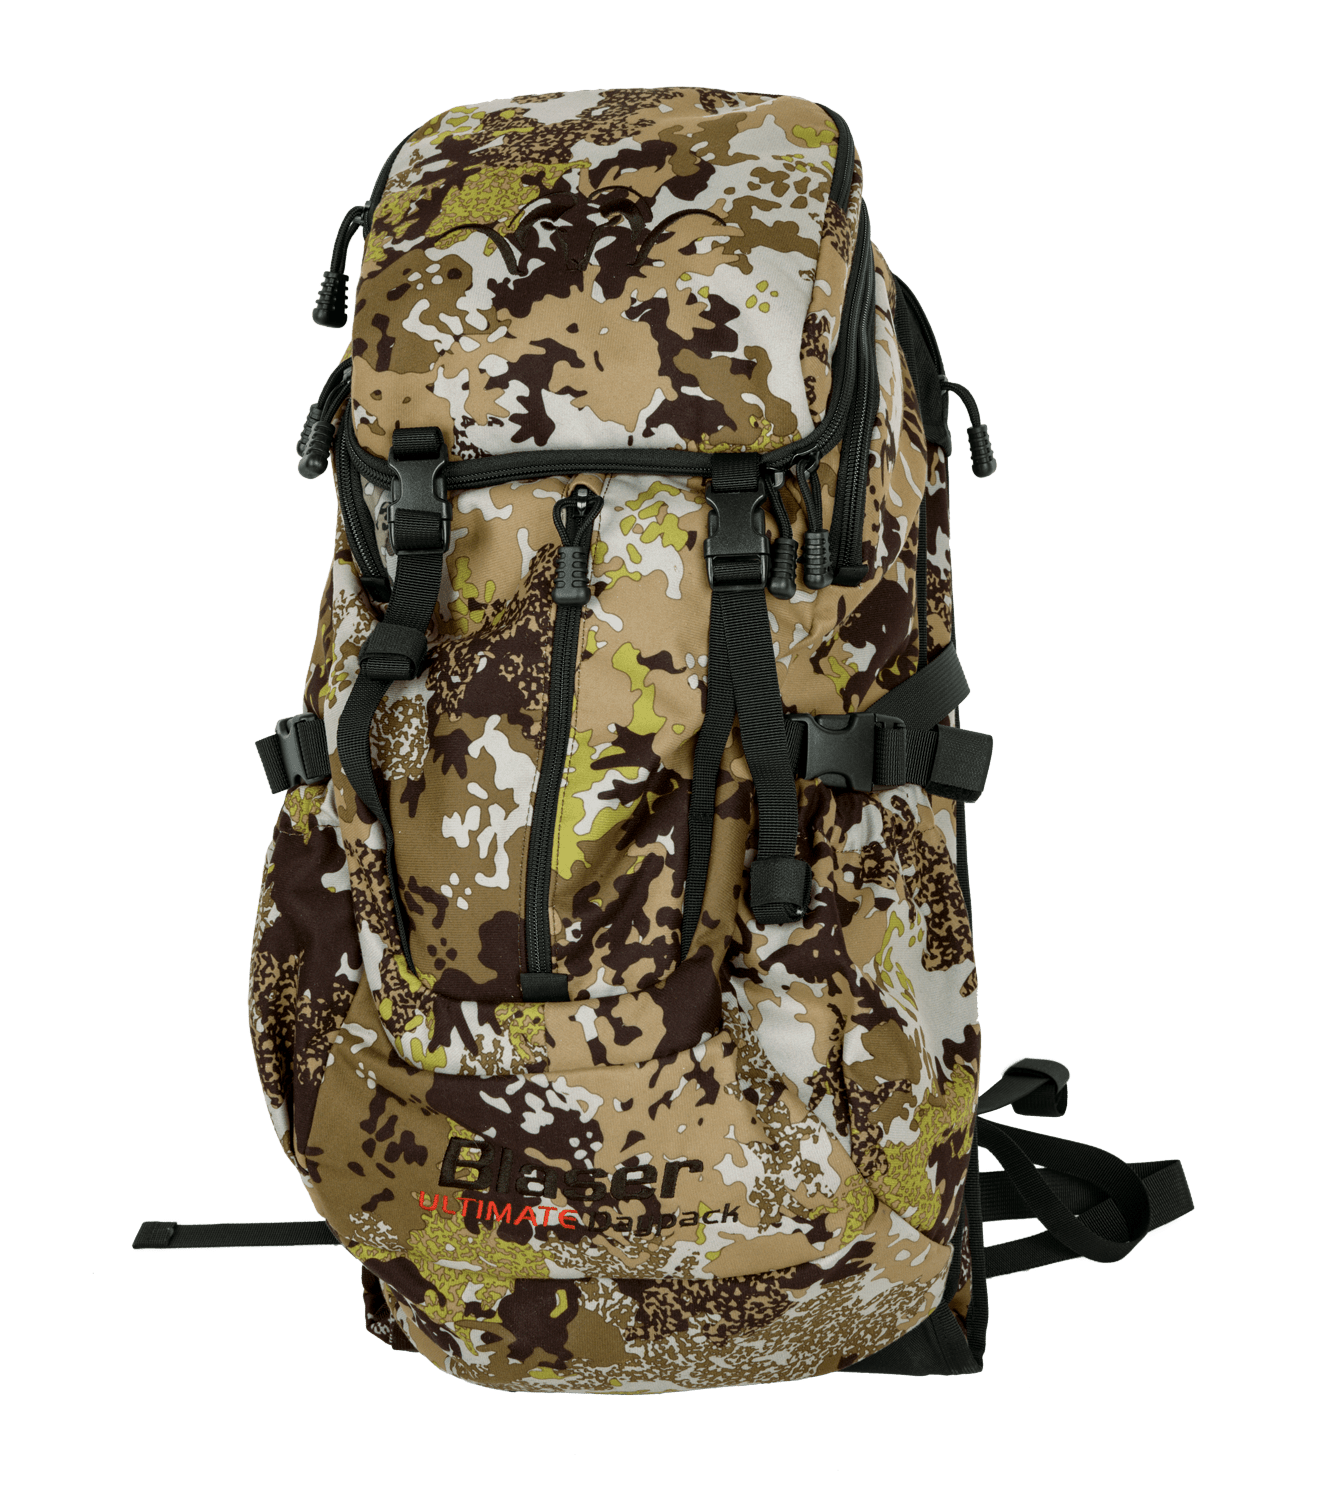 Ultimate Daypack